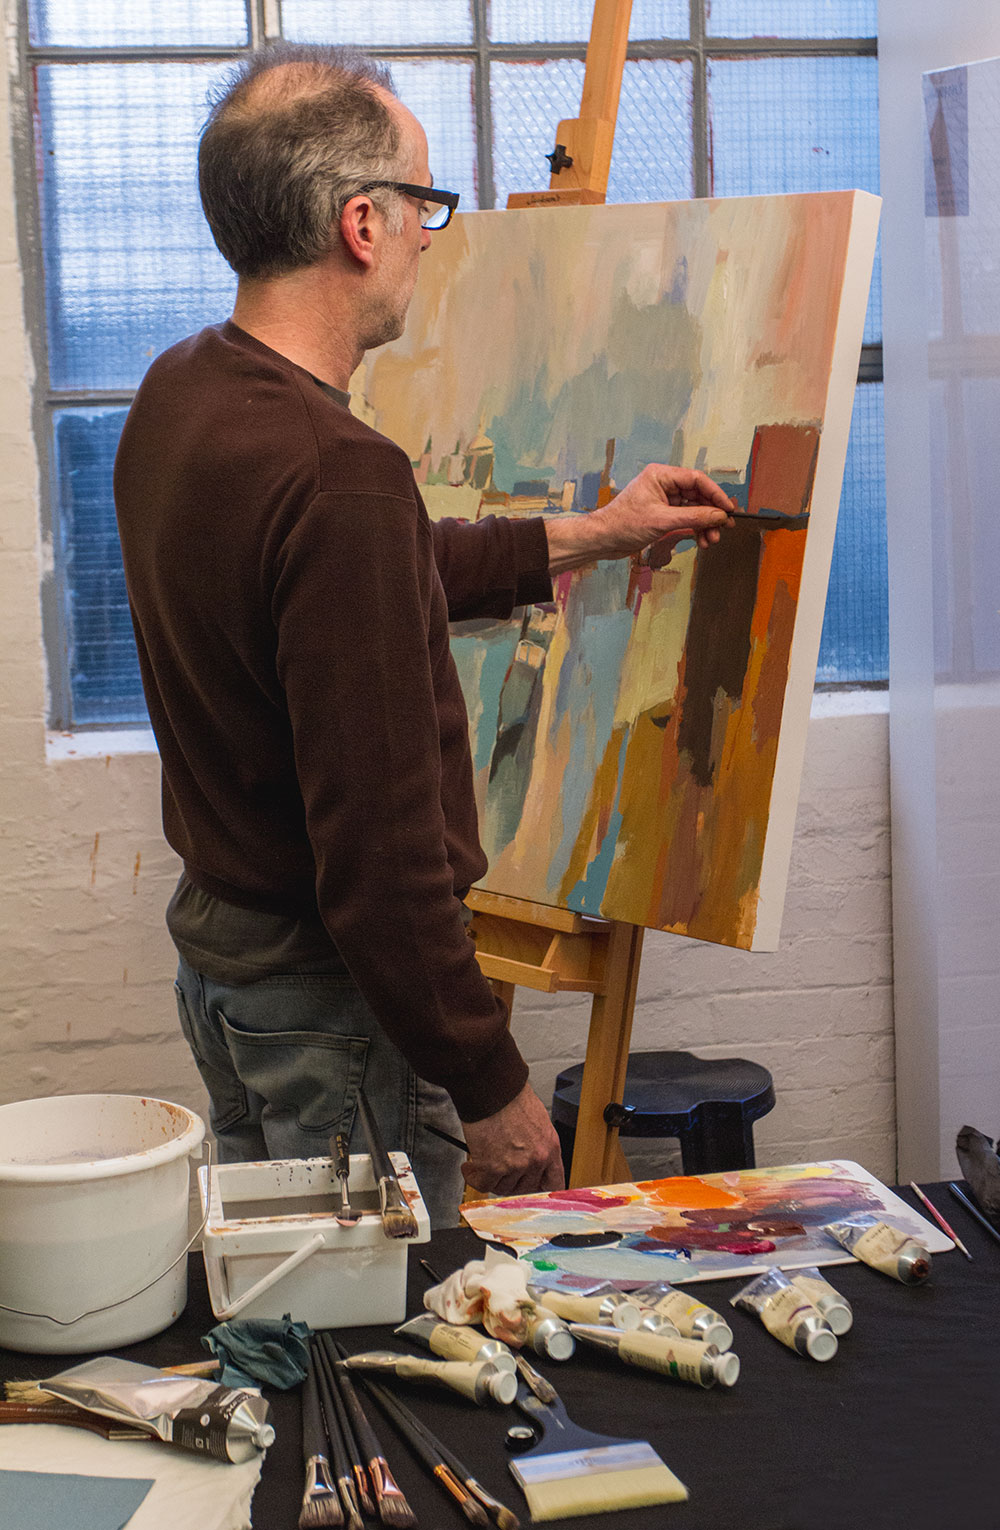 Paul Bell painting with Jackson's Artist Acrylics